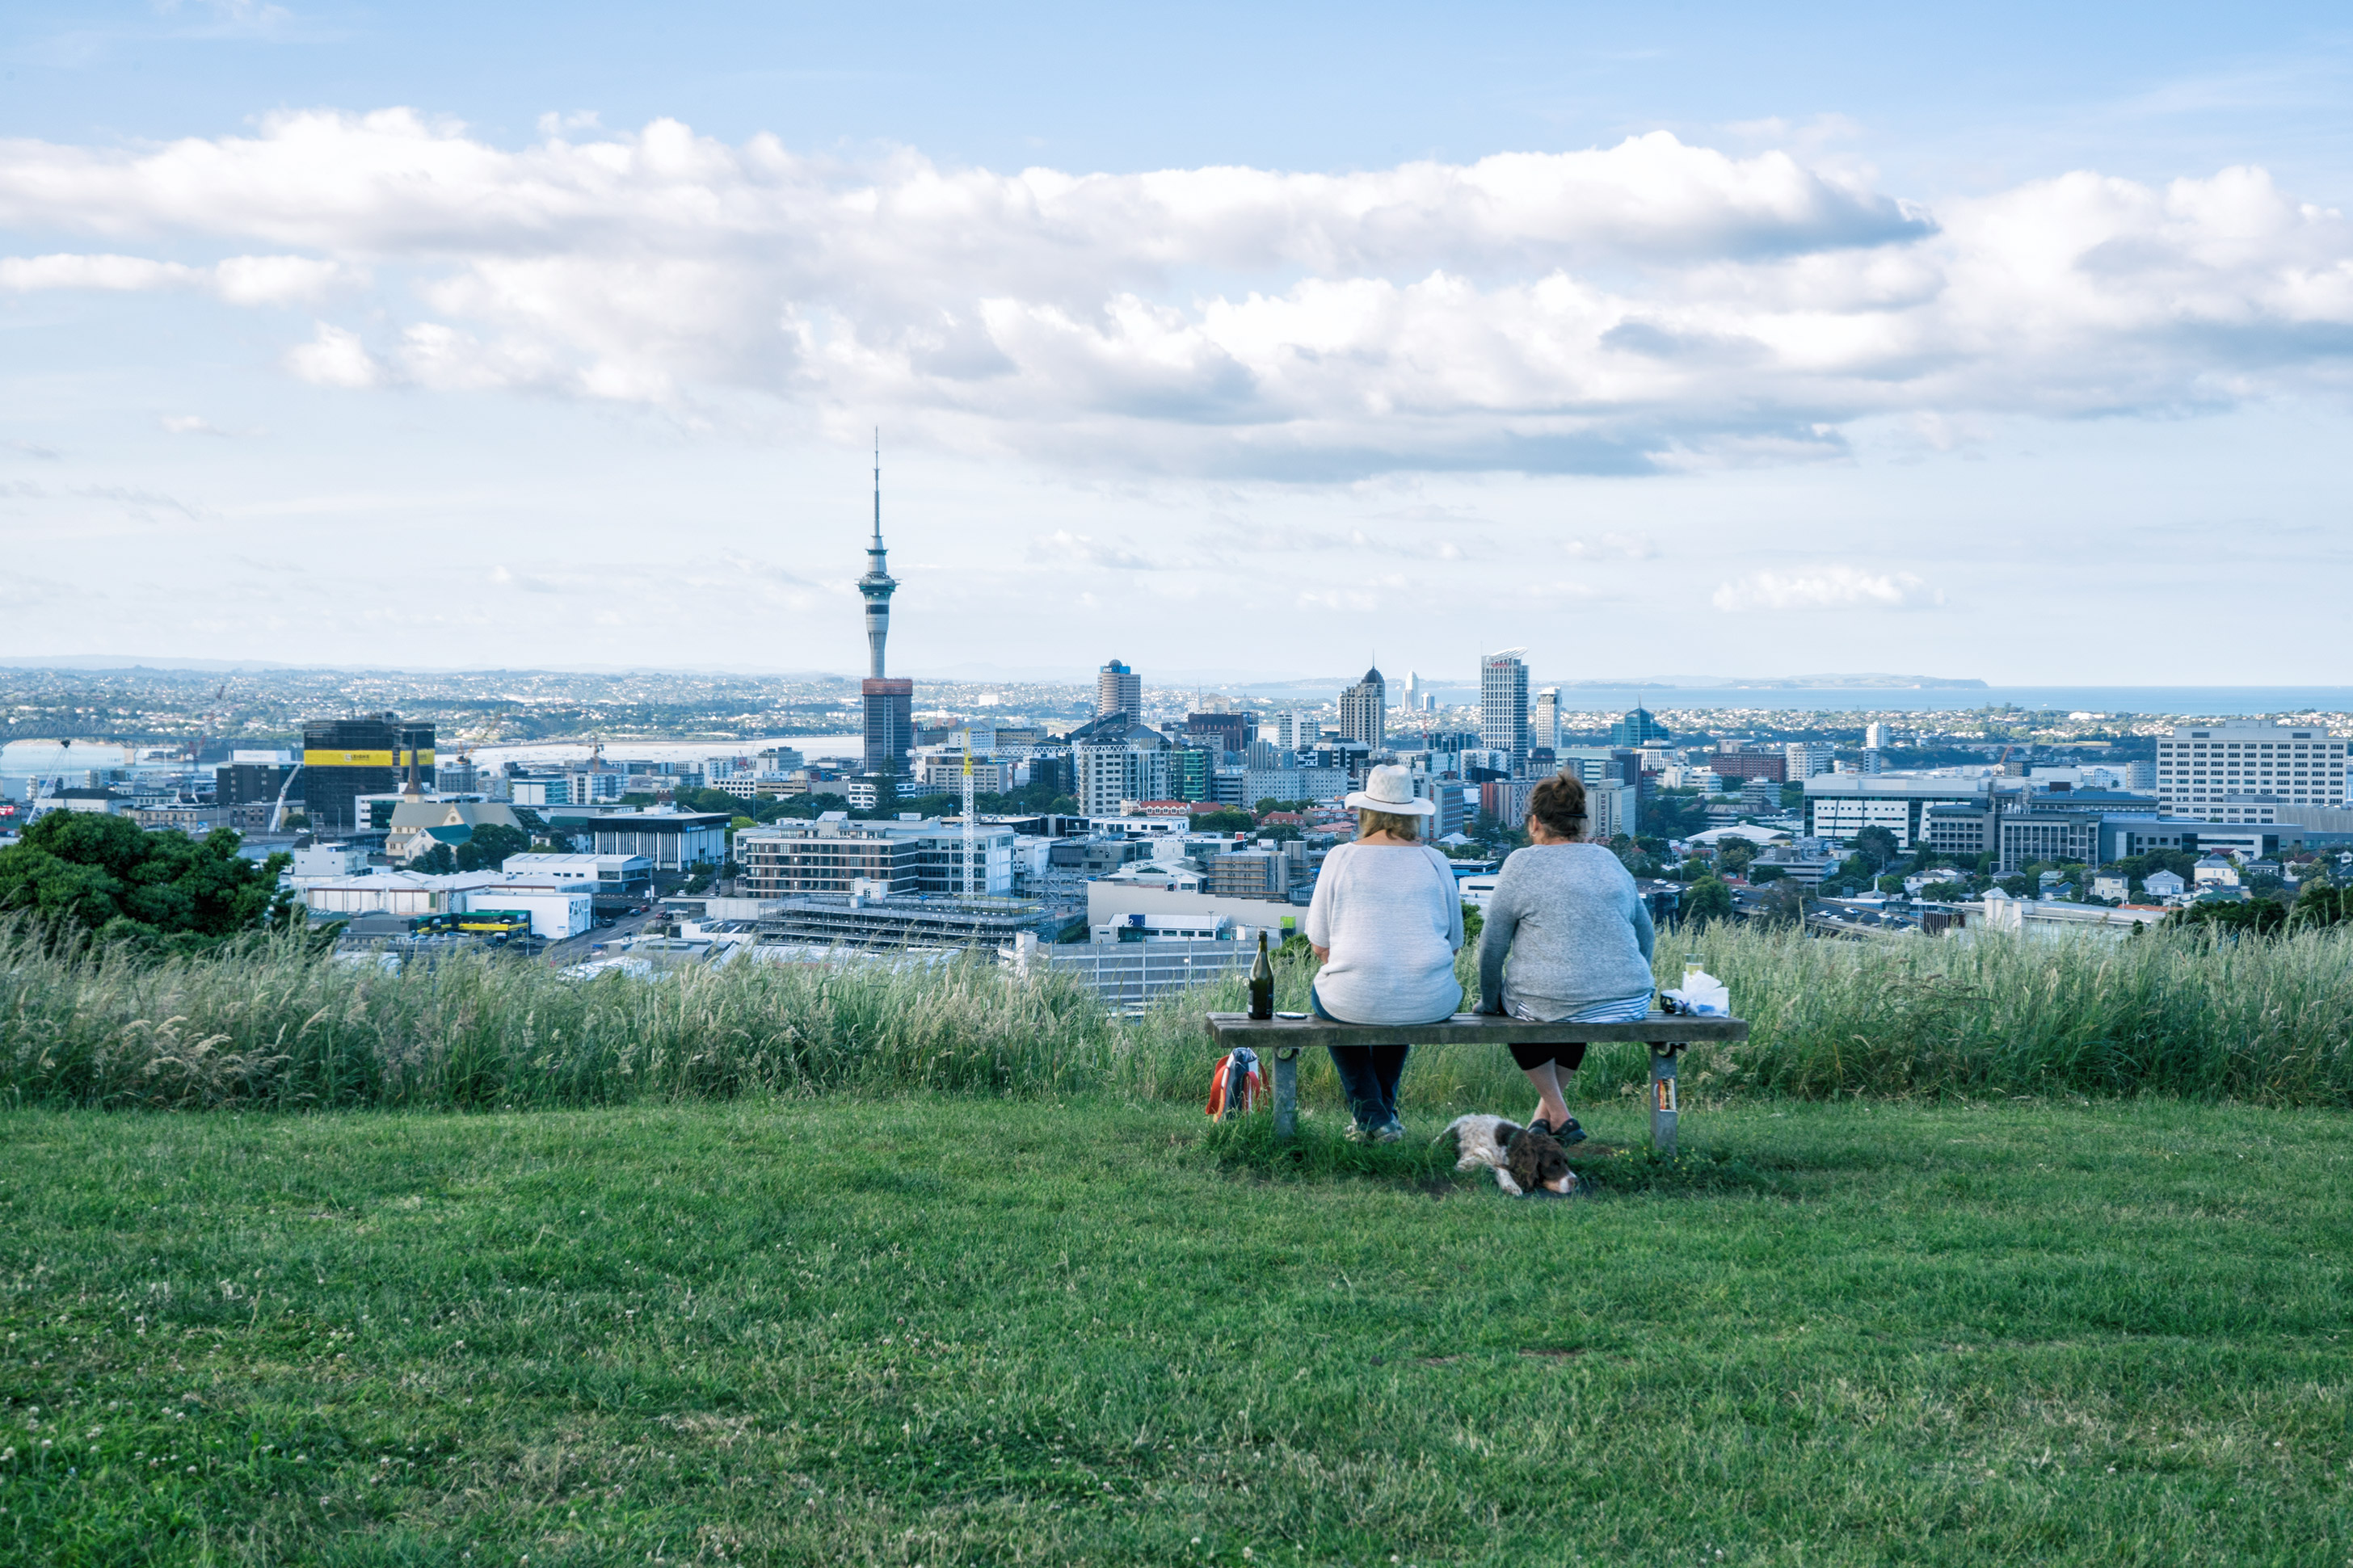 Auckland City View From Mt Eden With Two Women Sitting On Bench In Foreground